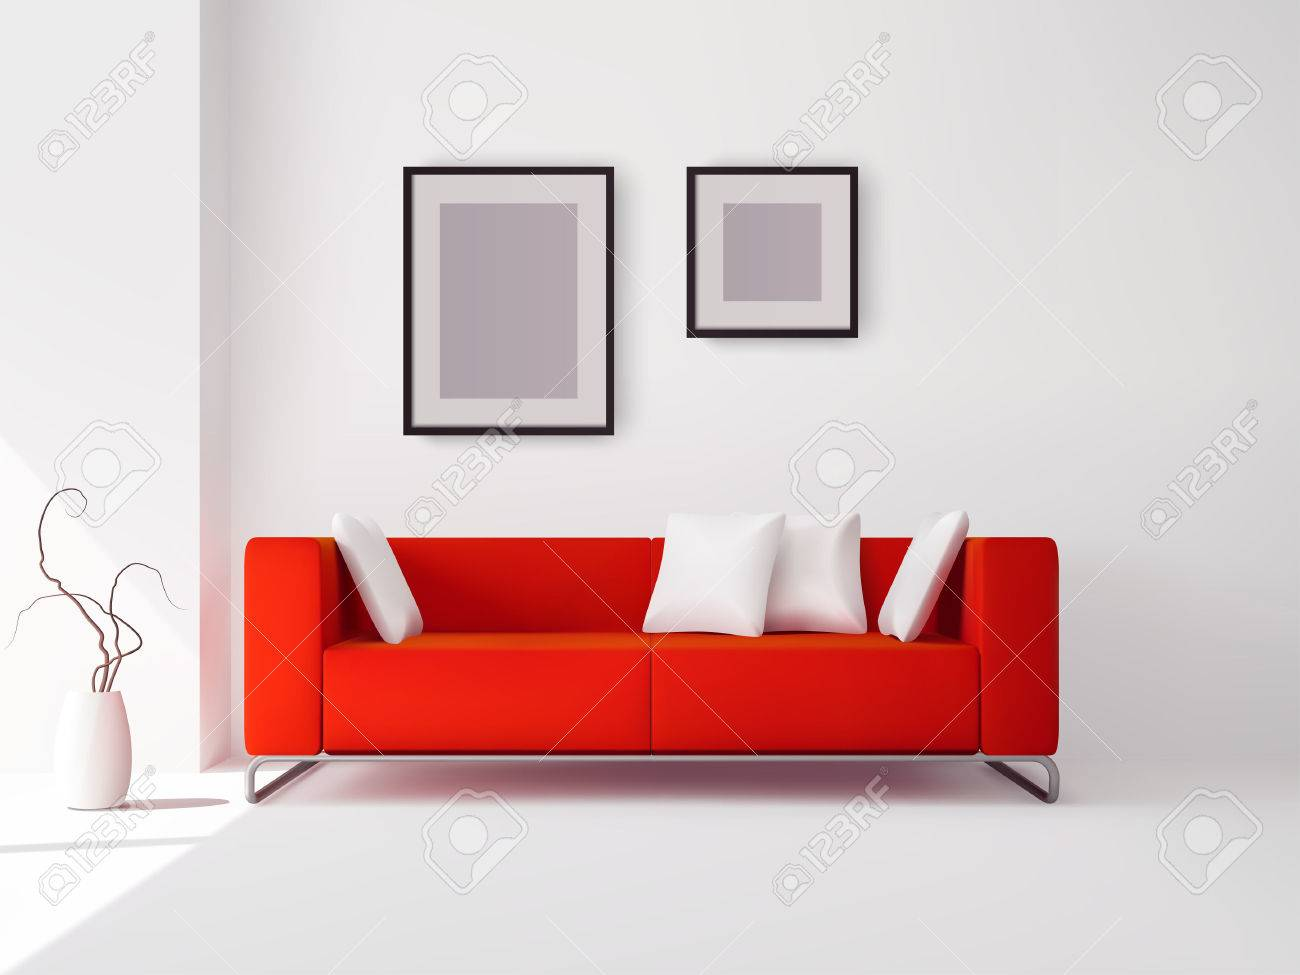 realistic red sofa with white pillows and frames and pot with plant vector illustration stock vector - Red Sofa